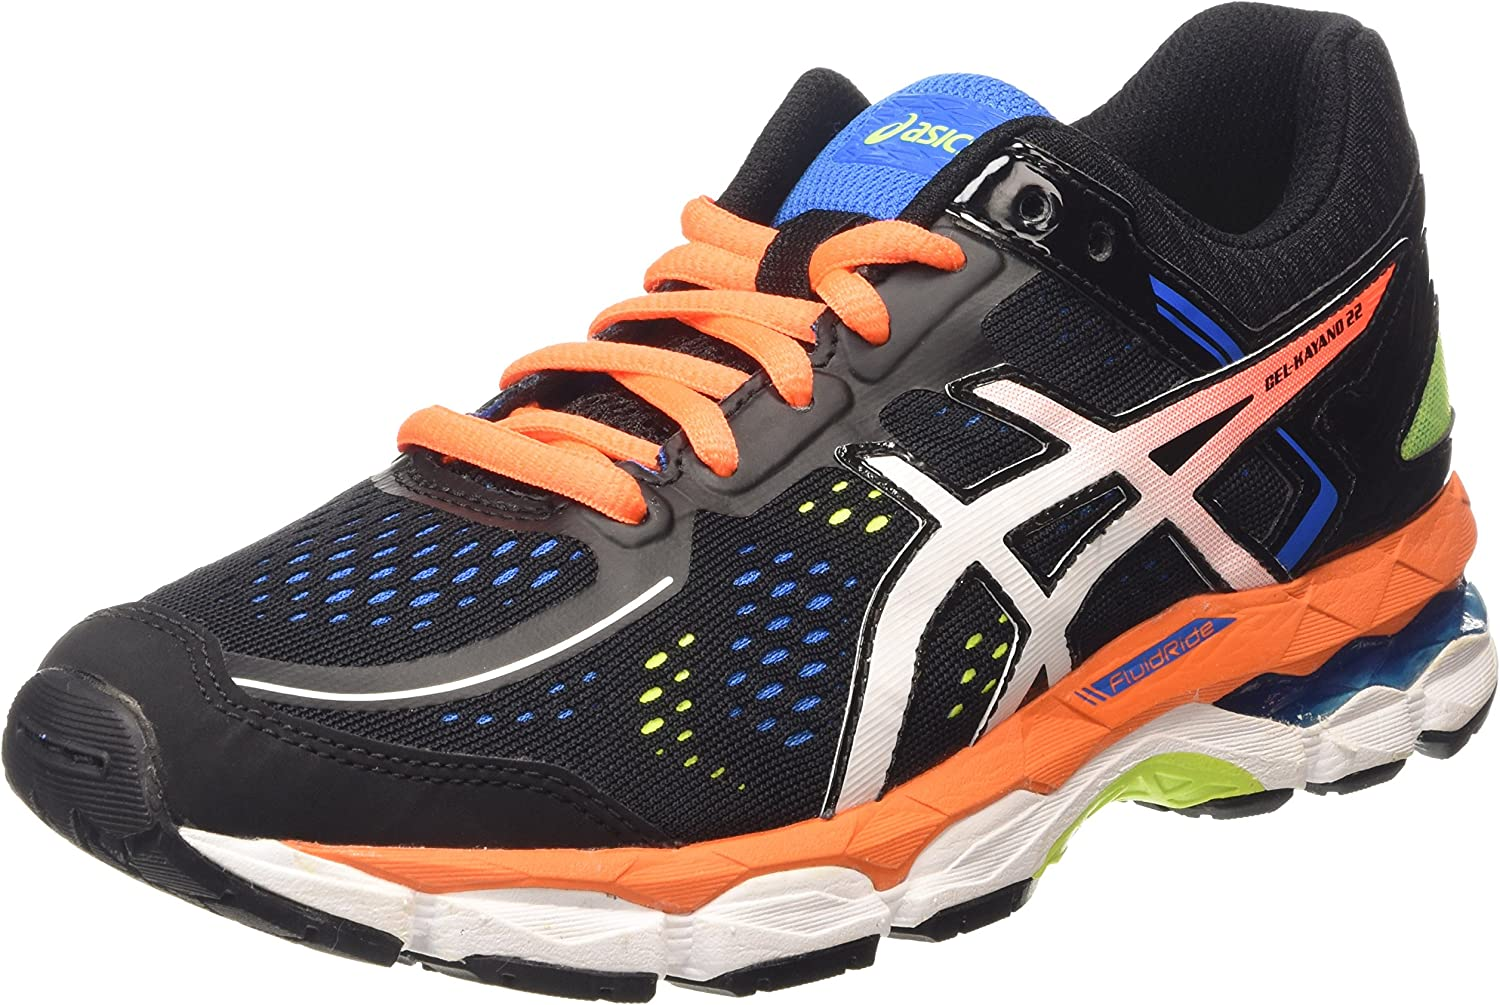 ASICS - Gel-Kayano 22 GS, Zapatillas de Running Niños-Niñas, Negro (Black/Hot Orange/Electric Blue 9030), 33 EU: Amazon.es: Zapatos y complementos